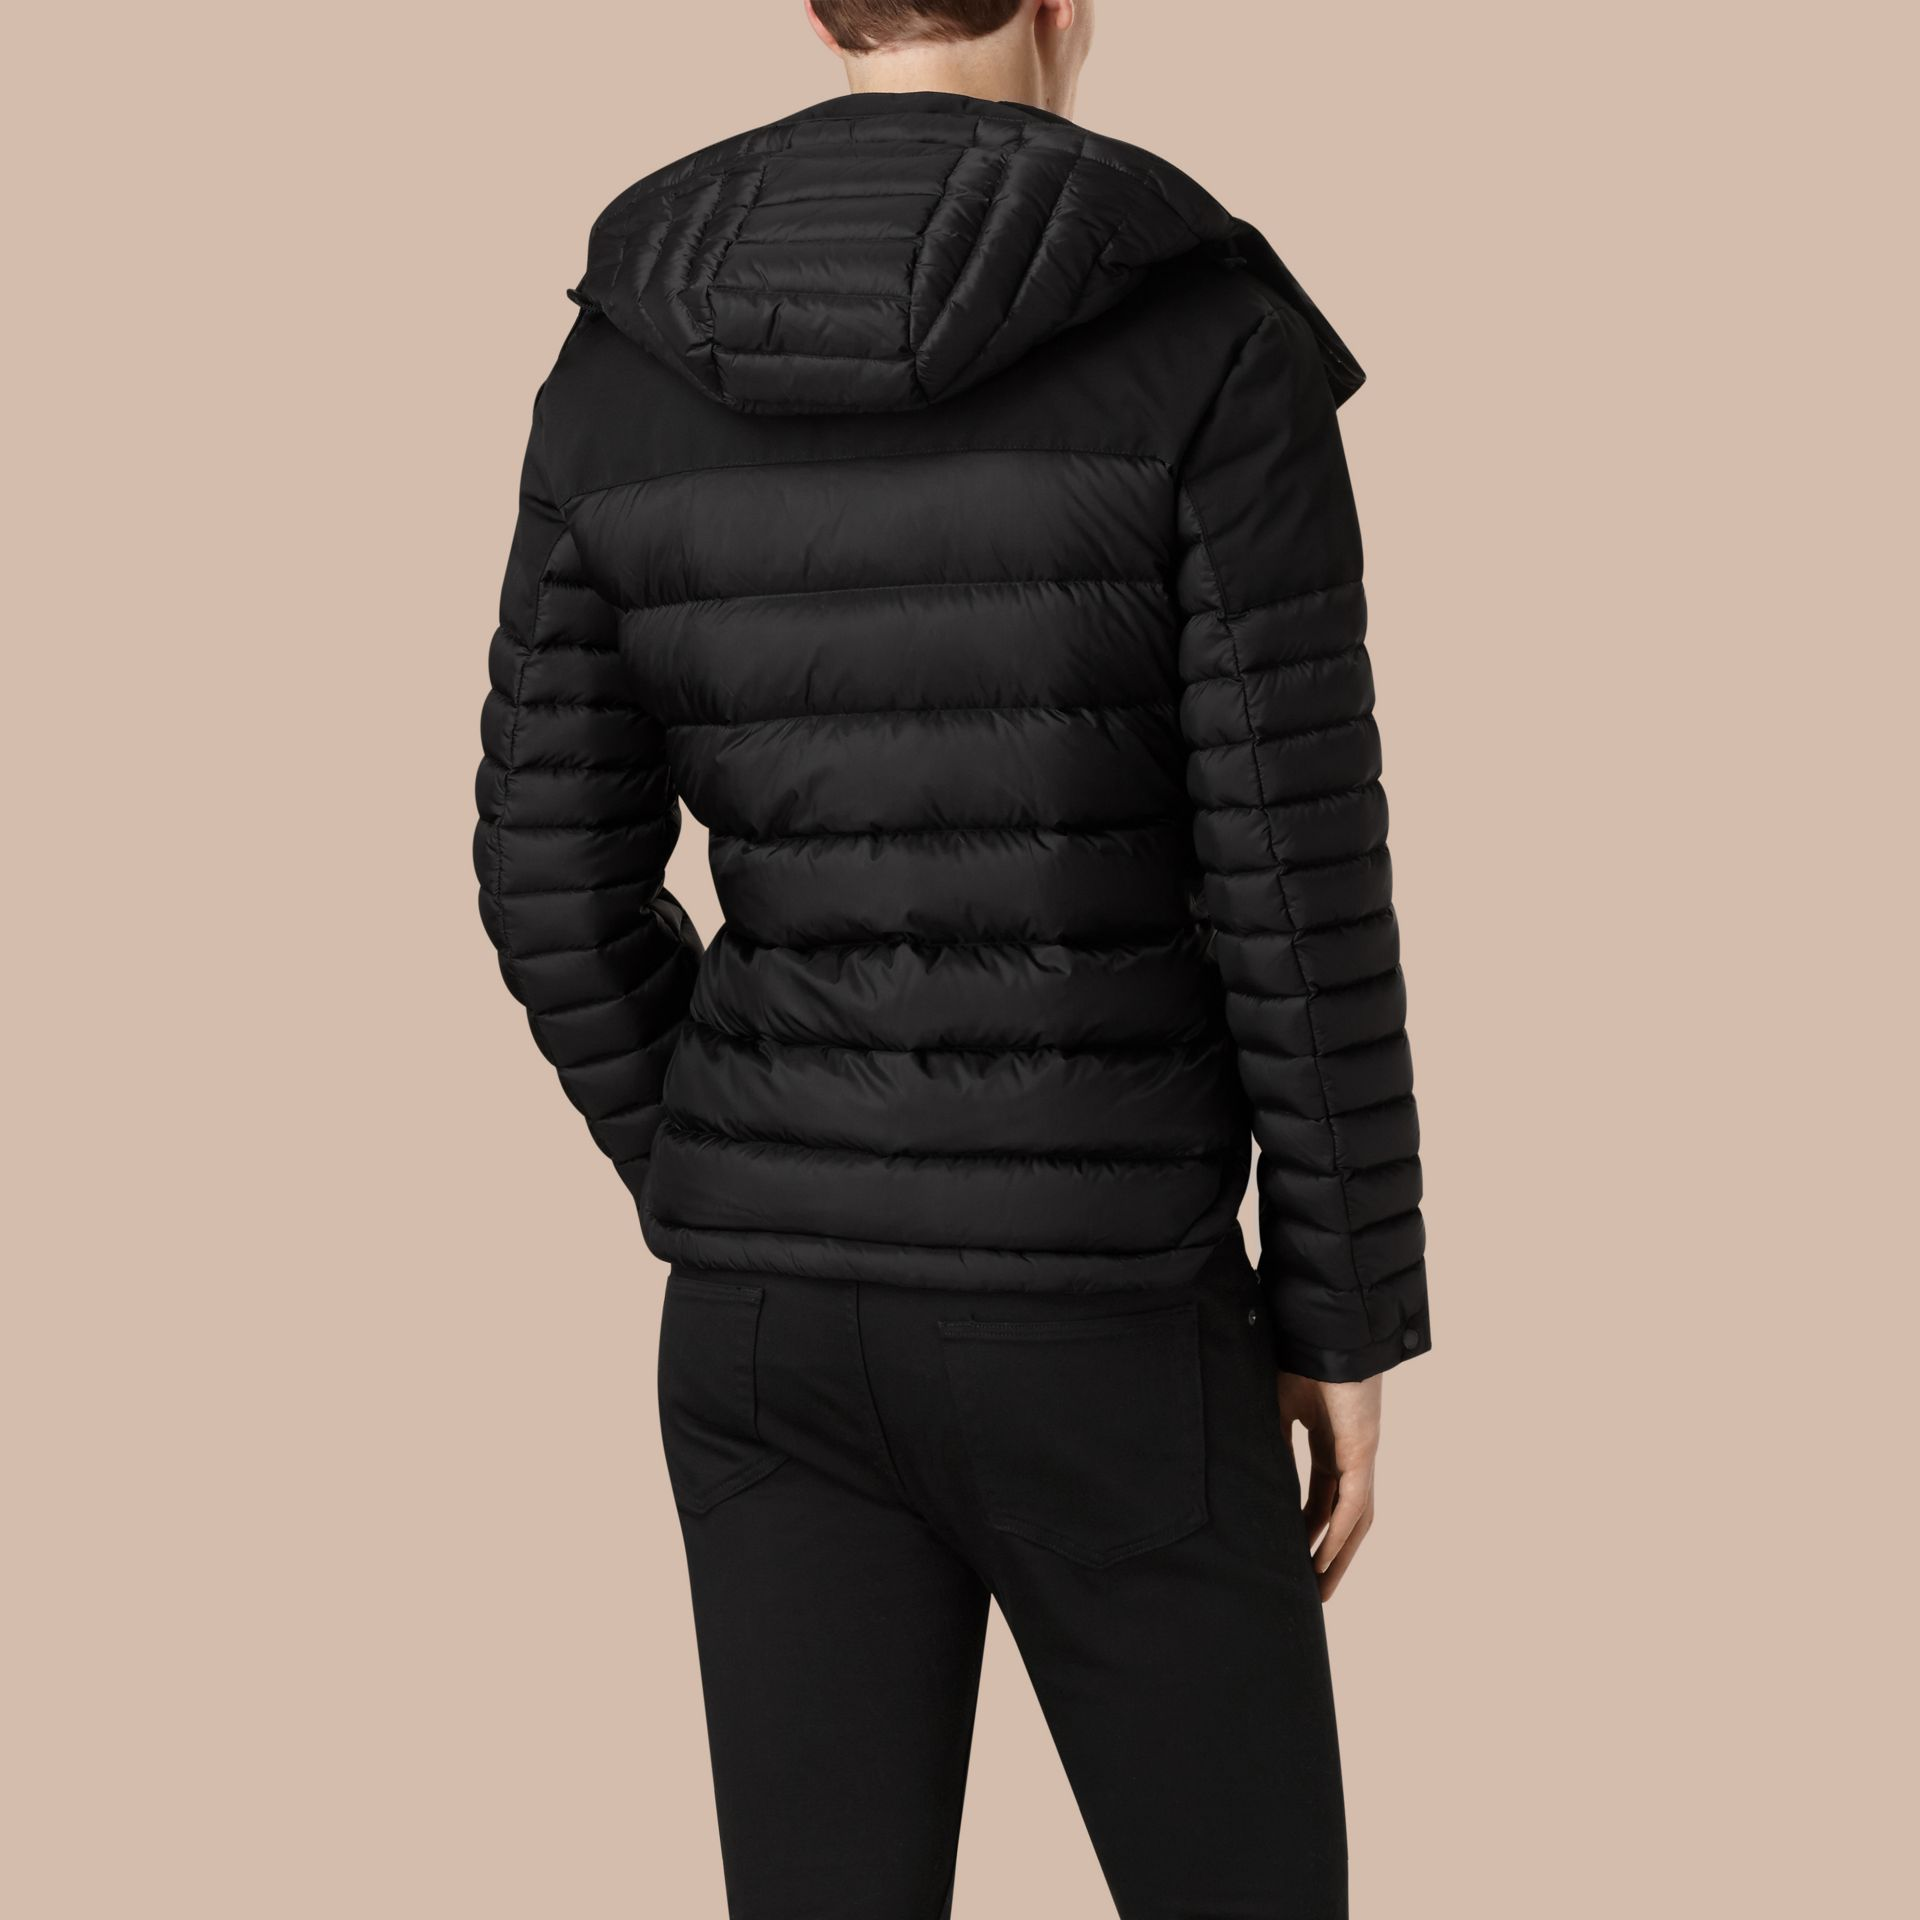 Black Mid-weight Down-filled Technical Puffer Jacket Black - gallery image 4